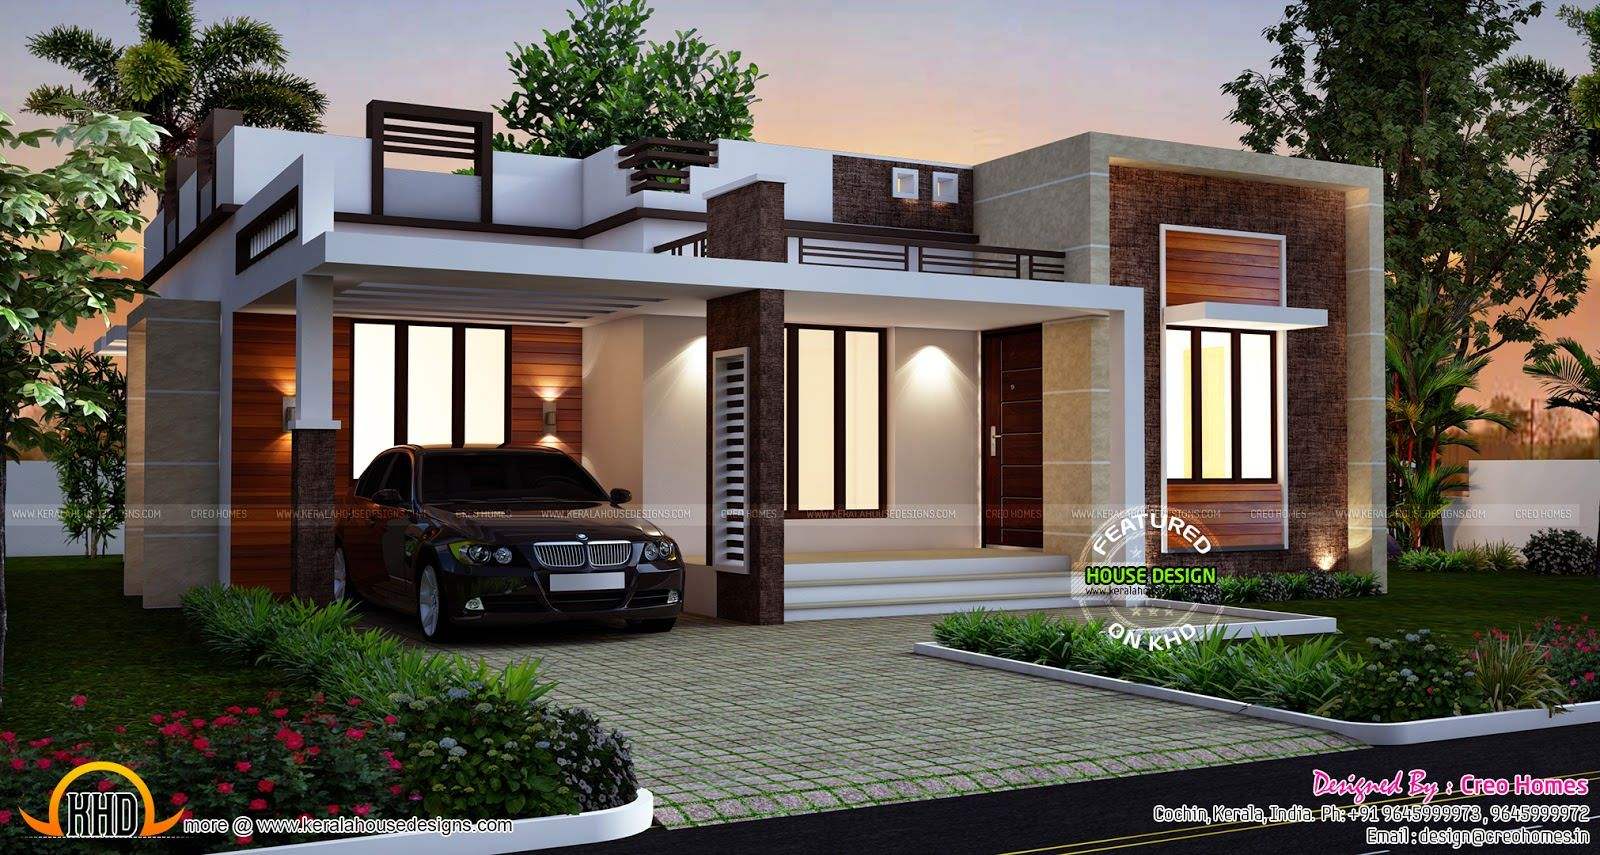 designs homes design single story flat roof house plans acreage designs house plans queensland